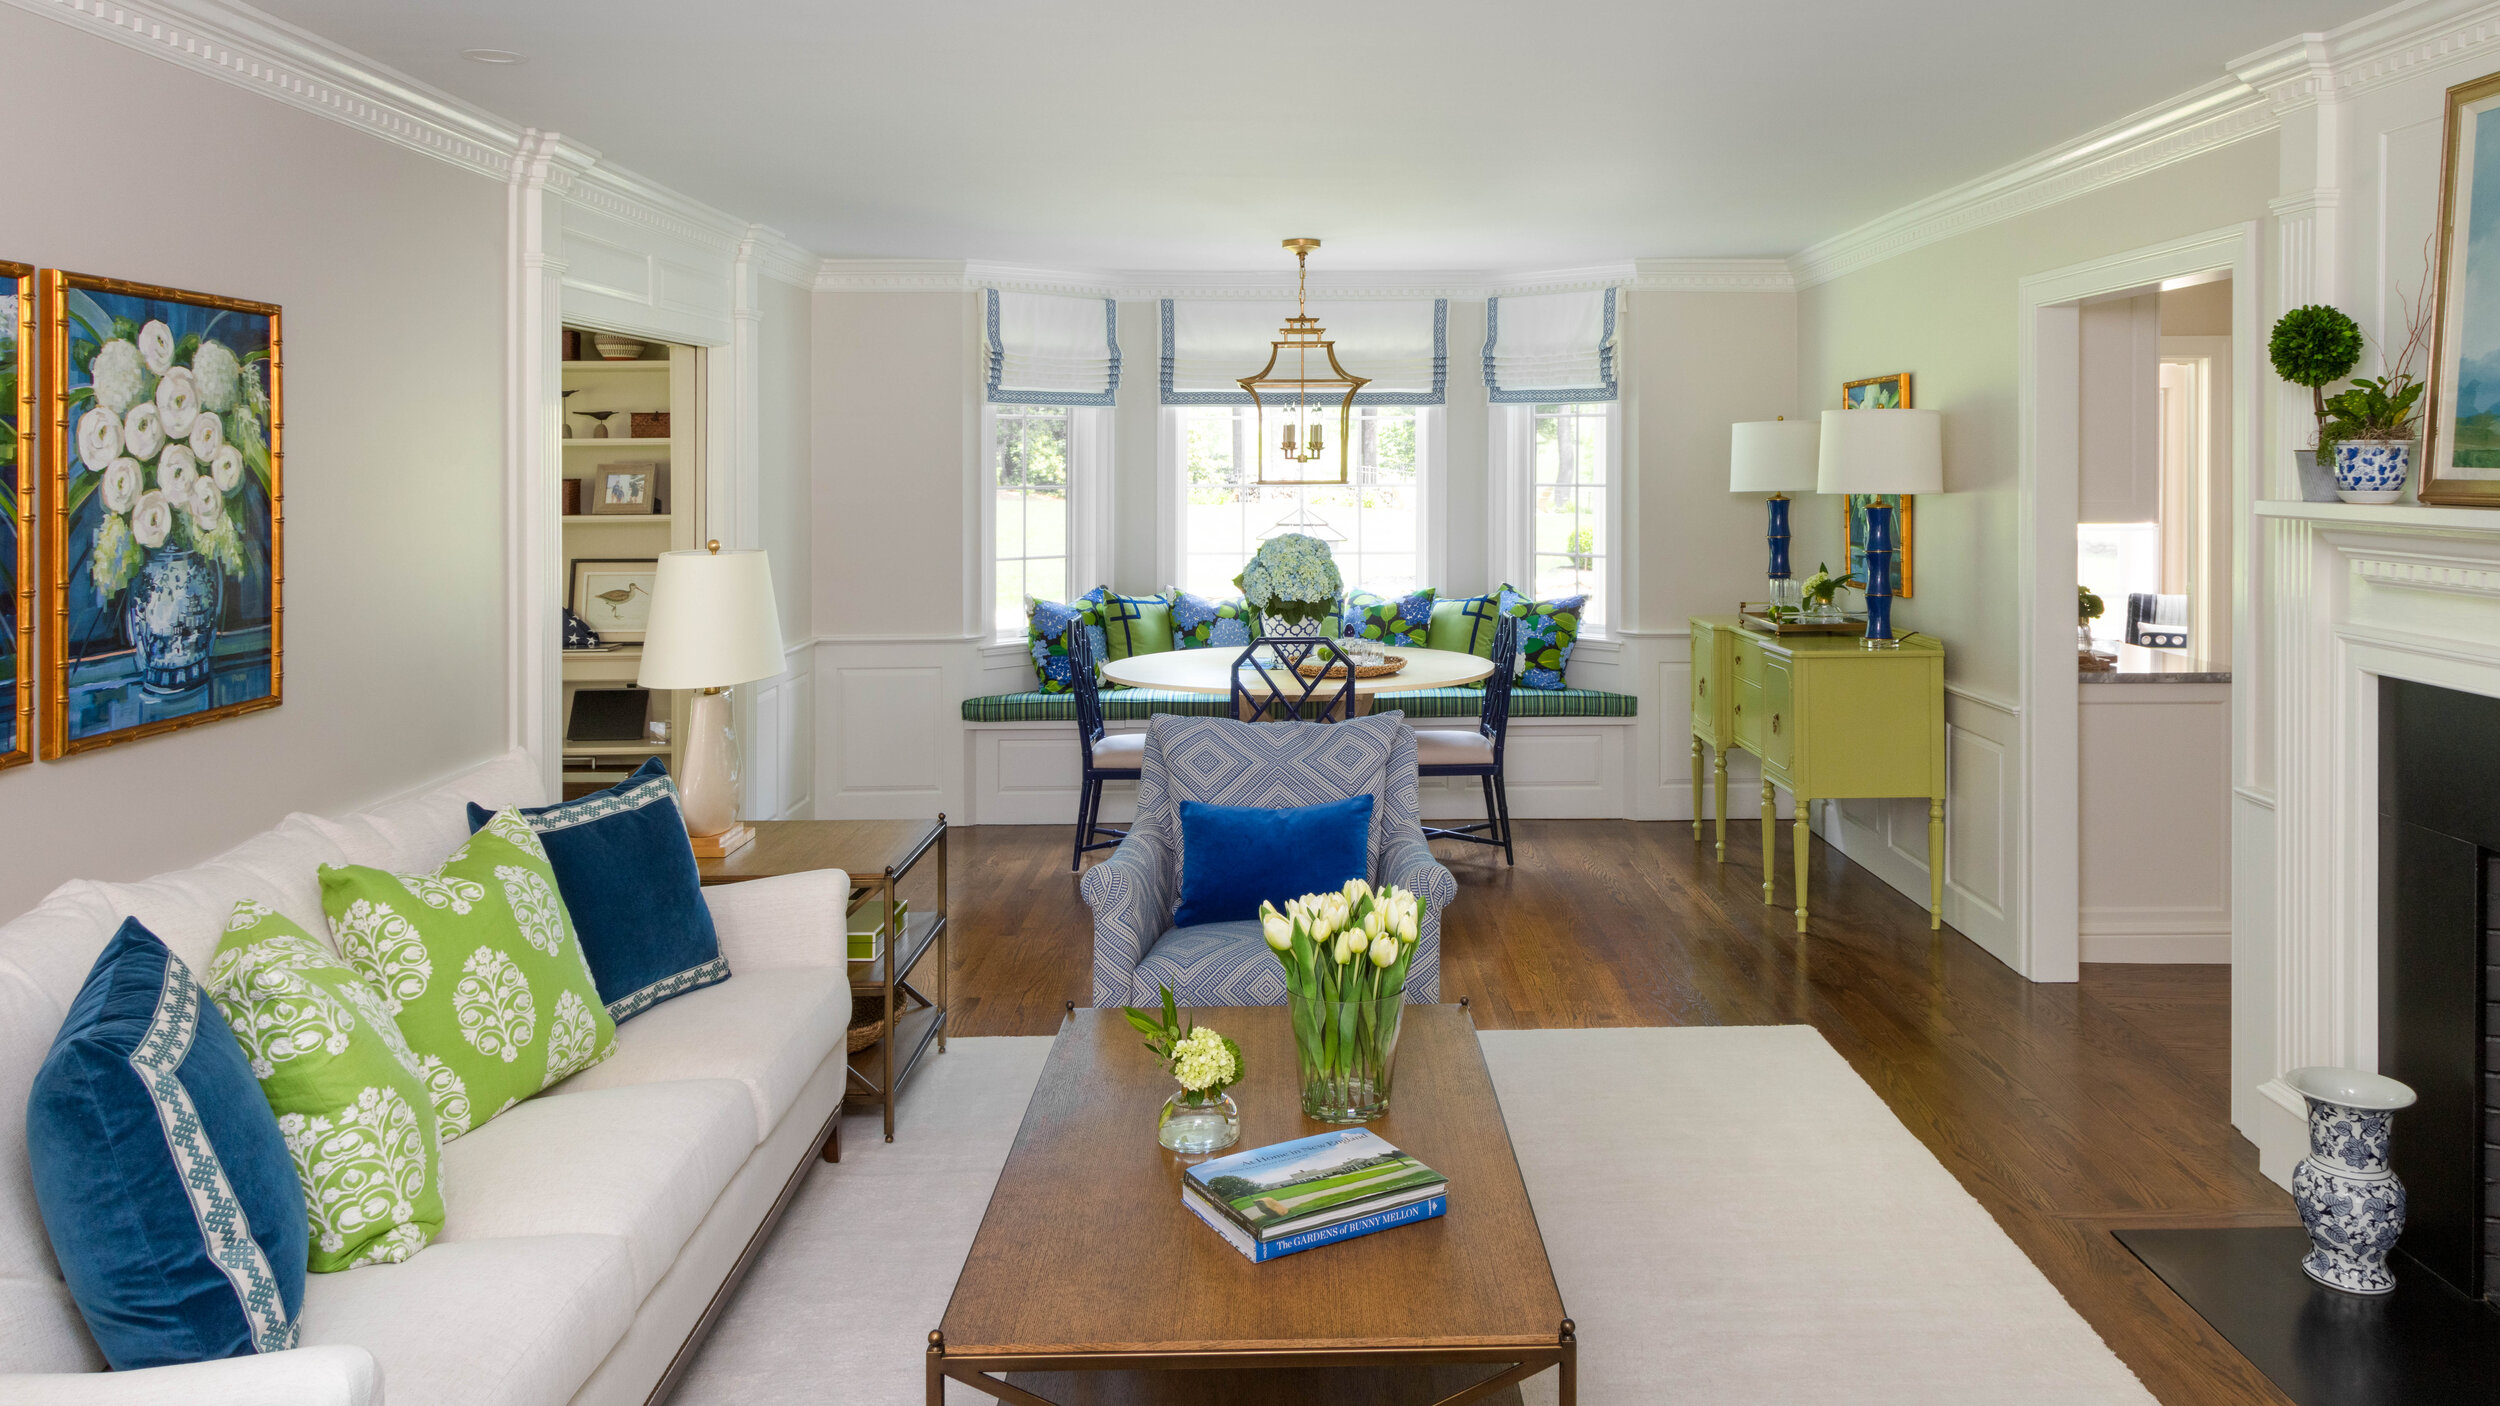 Bee S Knees Interior Design High End Residential Design Luxury Interior Designer In New England And Cape Cod